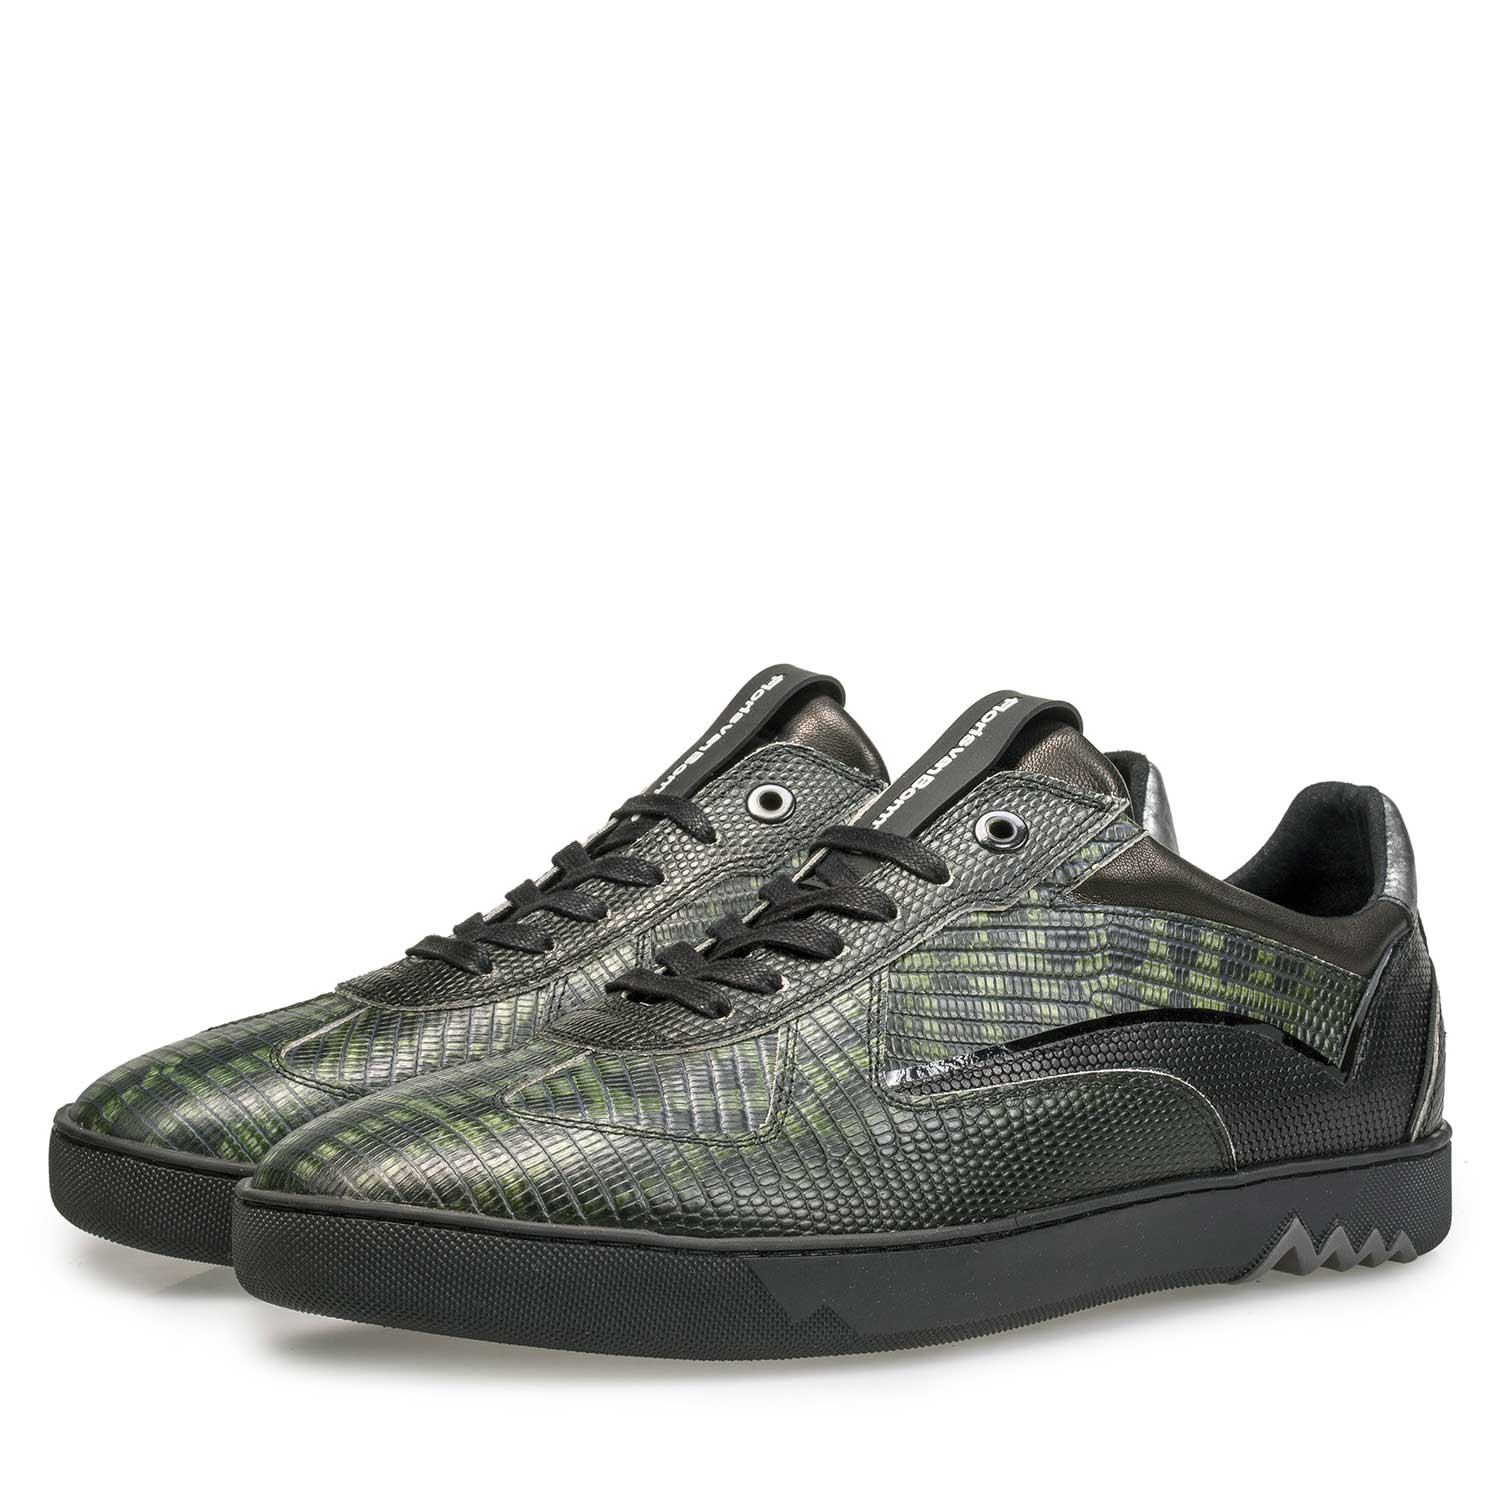 16242/03 - Sneaker with a lizard relief pattern